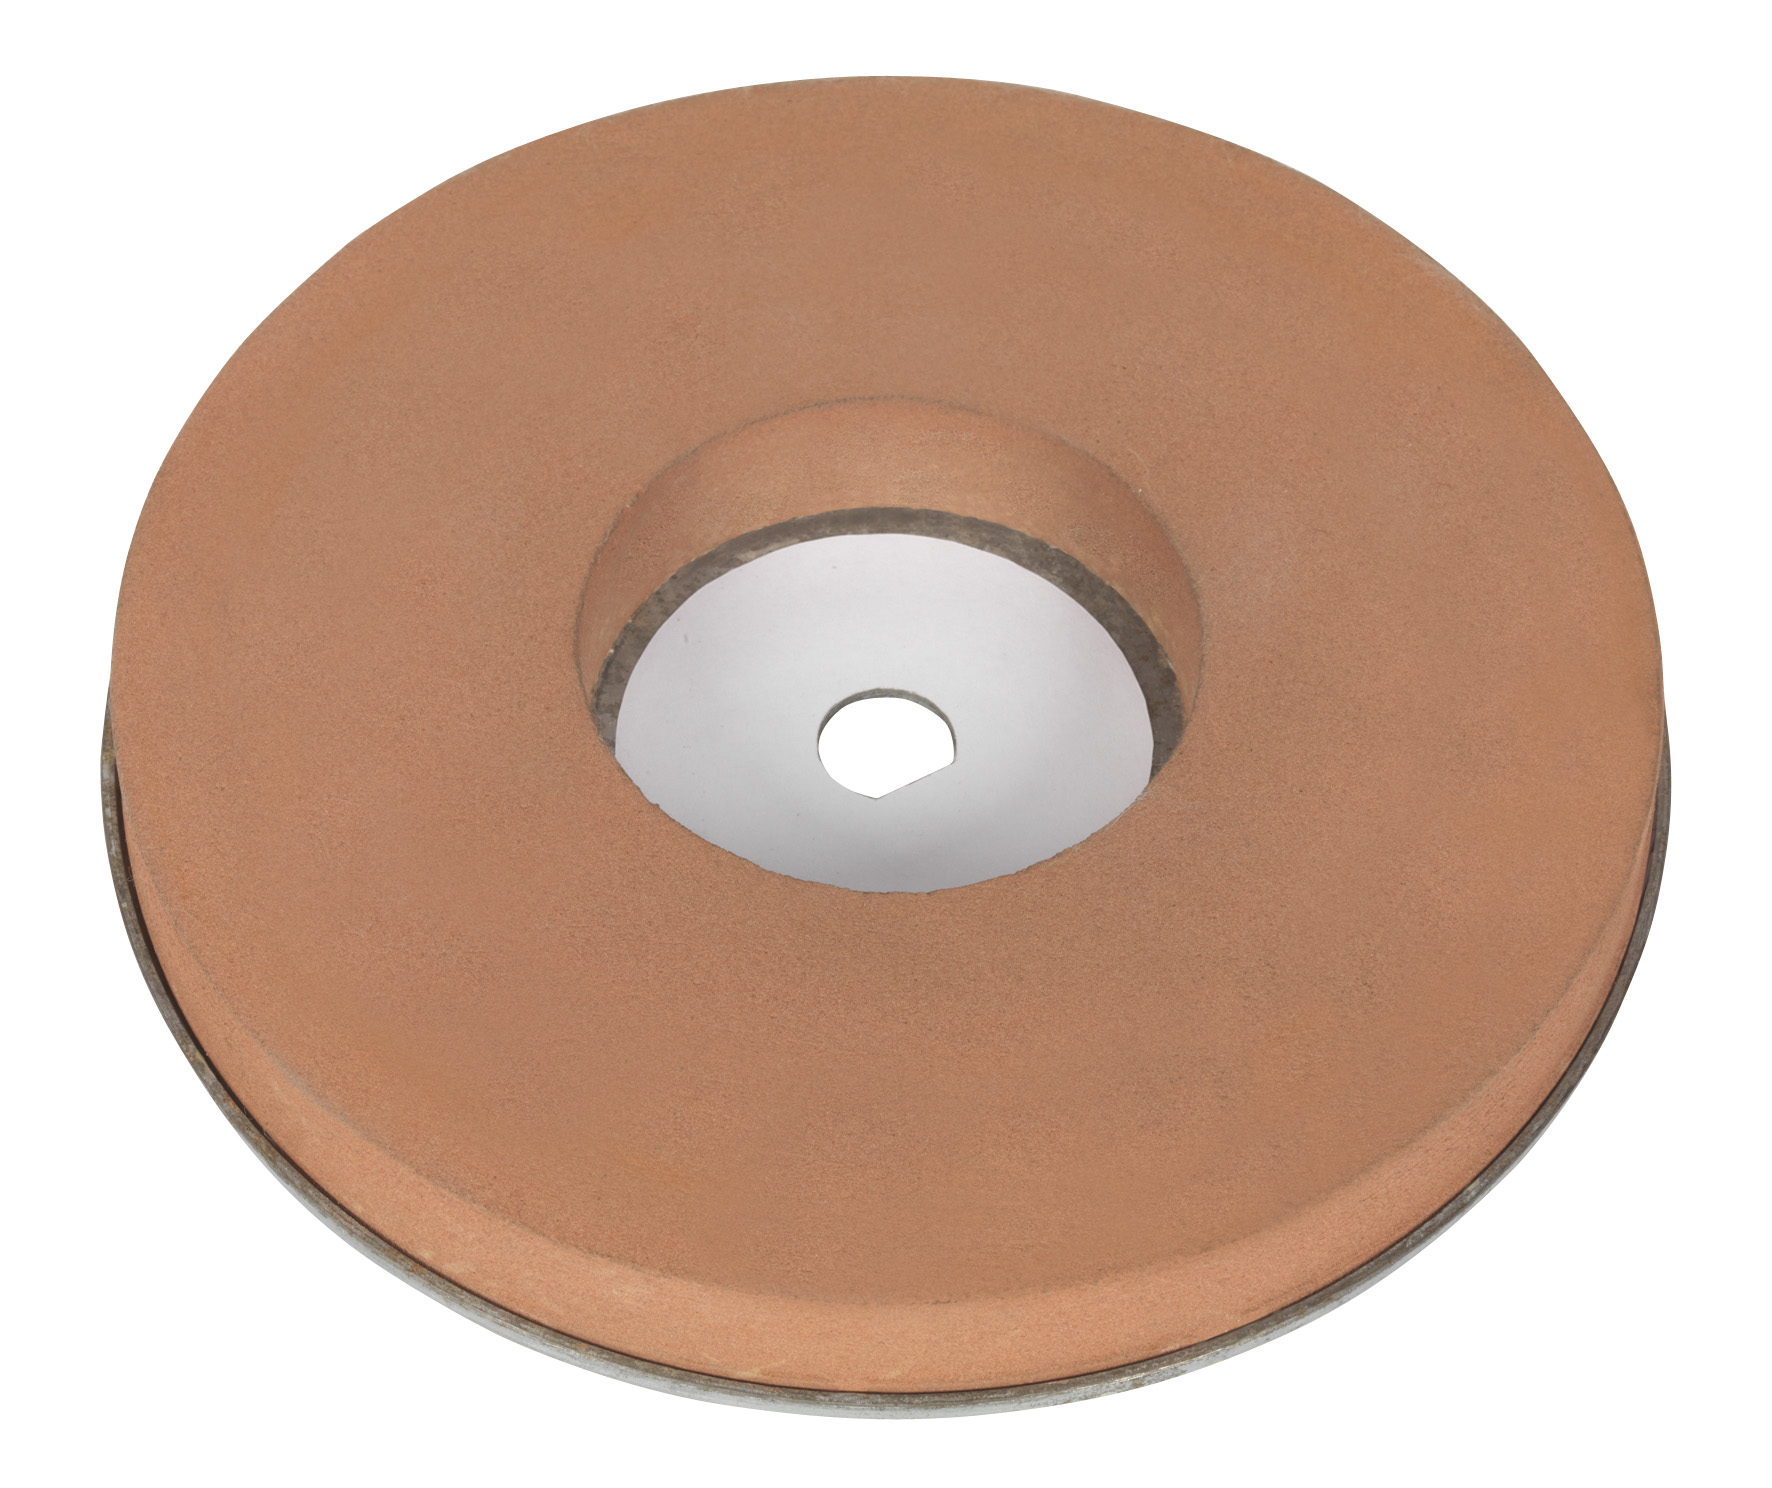 Sms2107gw200w Sealey Wet Stone Wheel 216 200mm For Sms2107